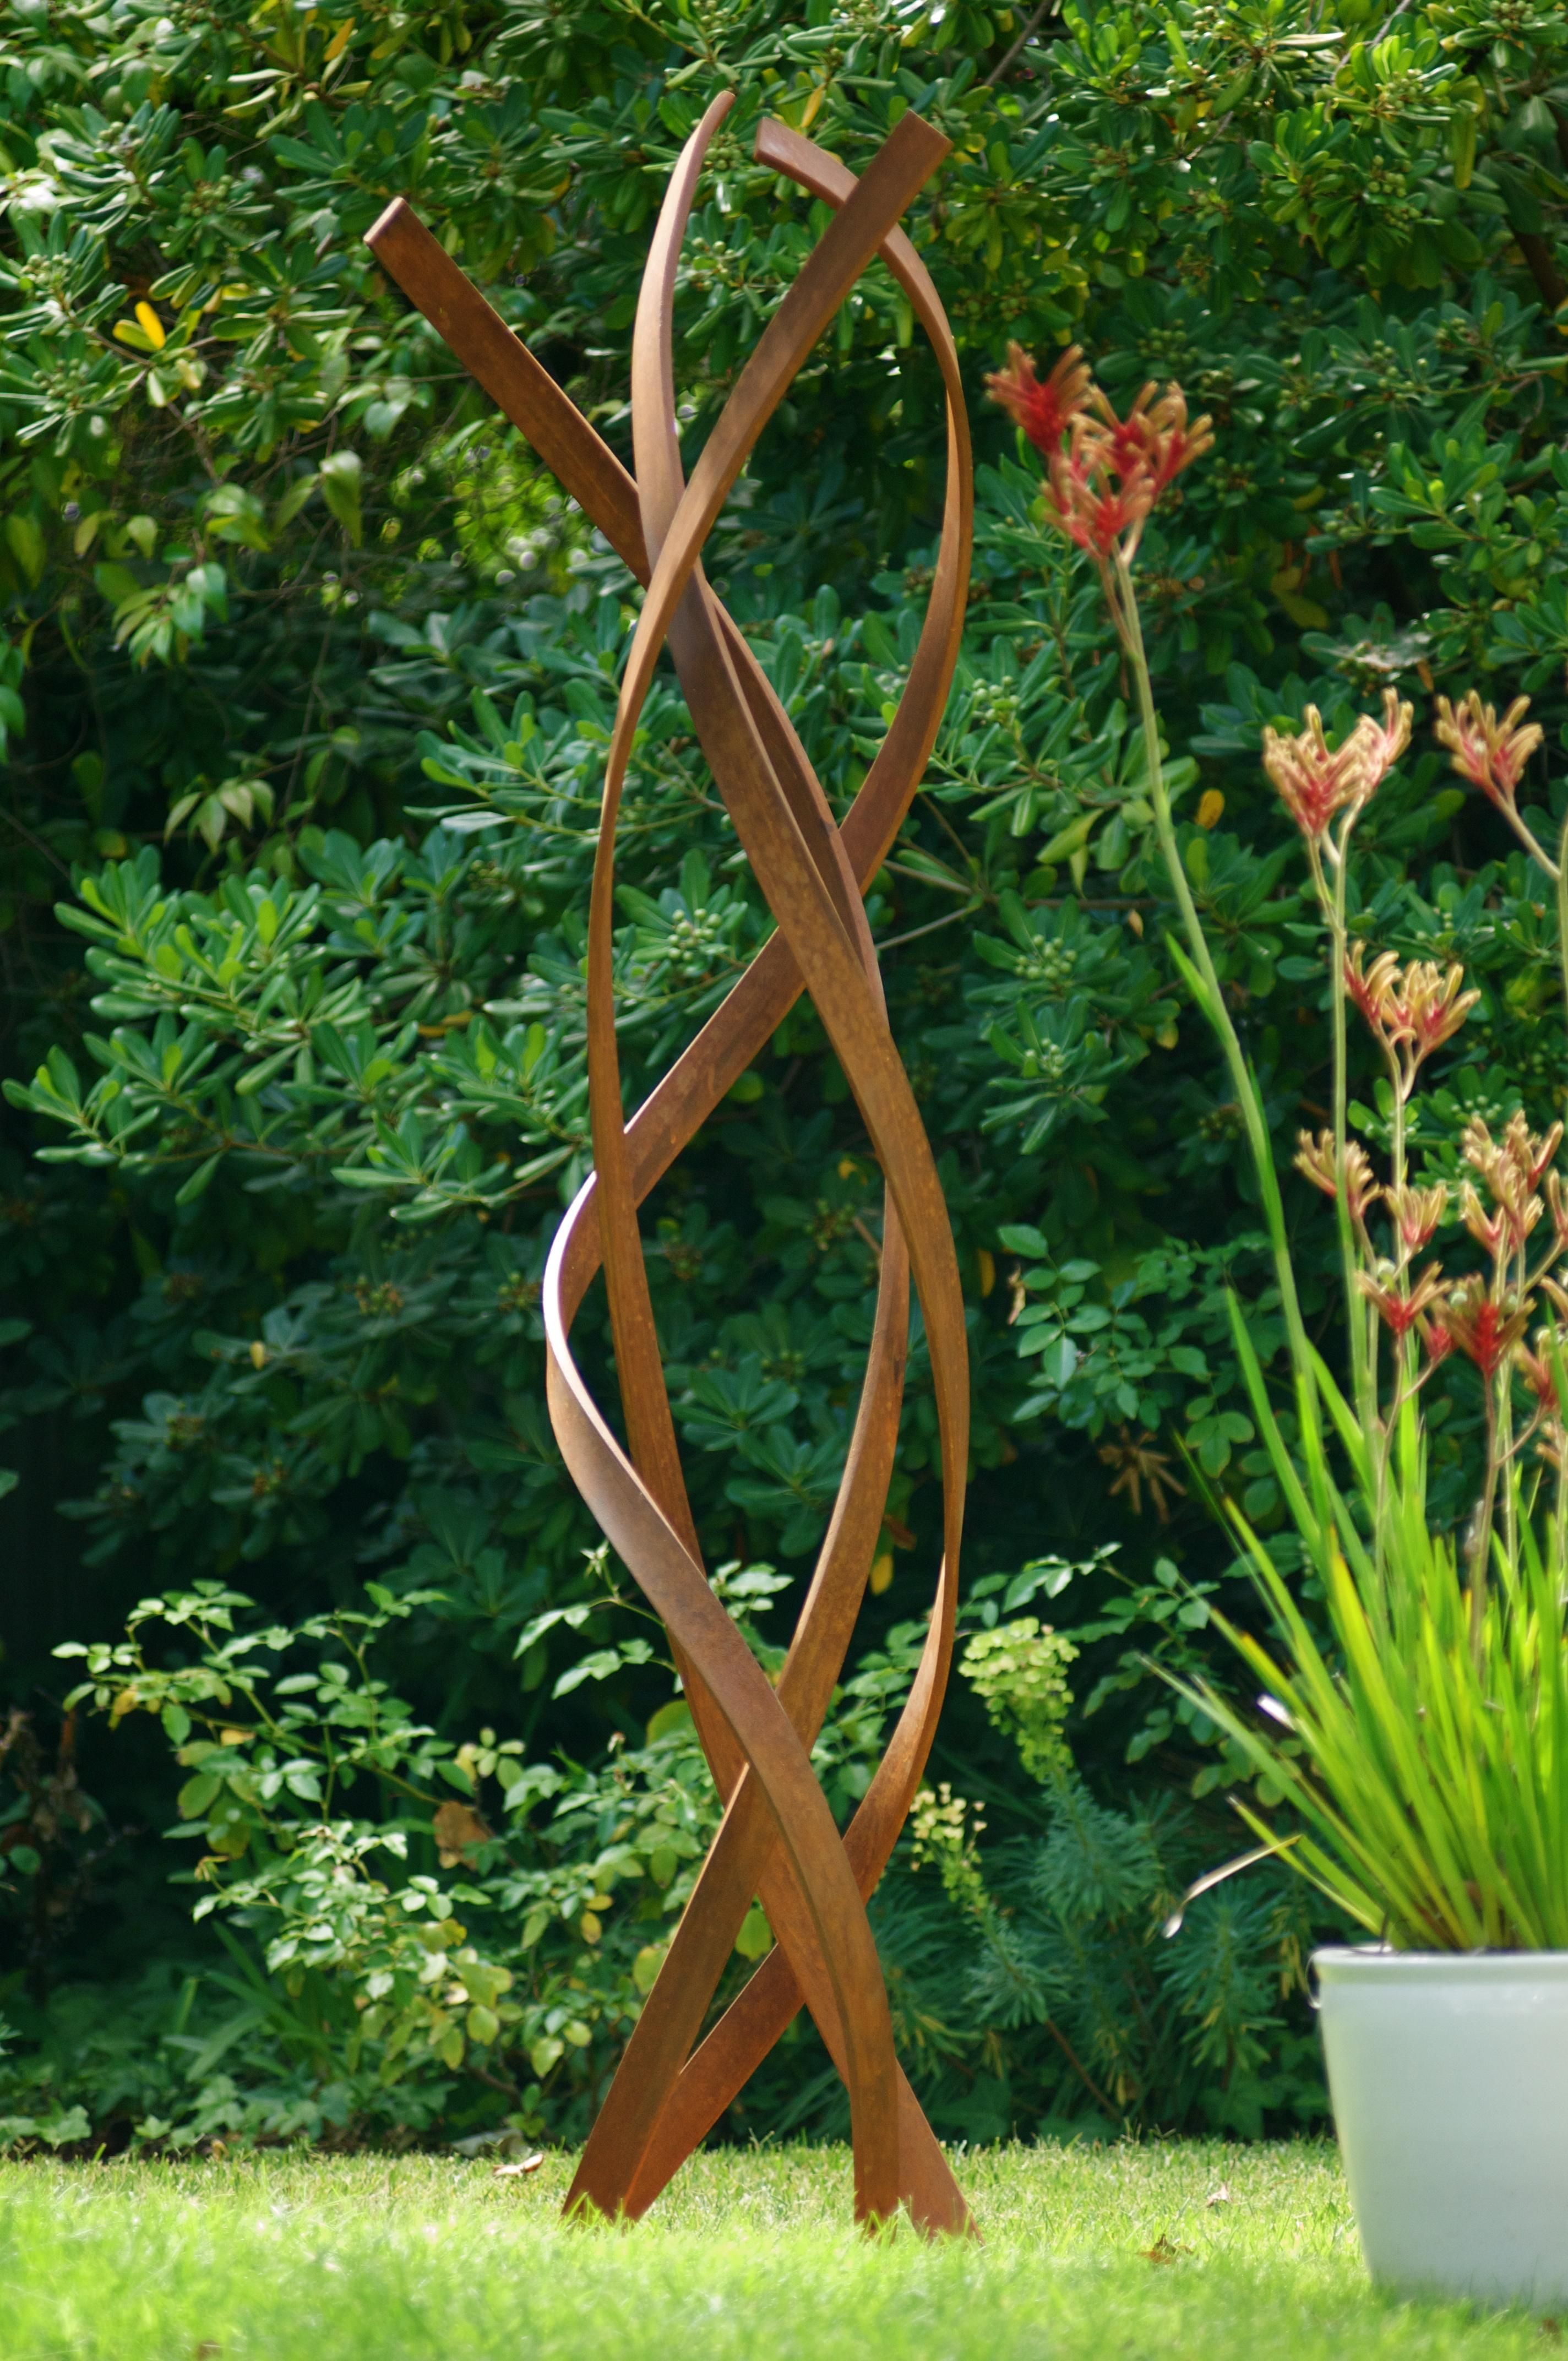 Beau Superb Metal Garden Sculpture 4 Modern Garden Art Sculptures 2848 X 4288  (2848×4288)